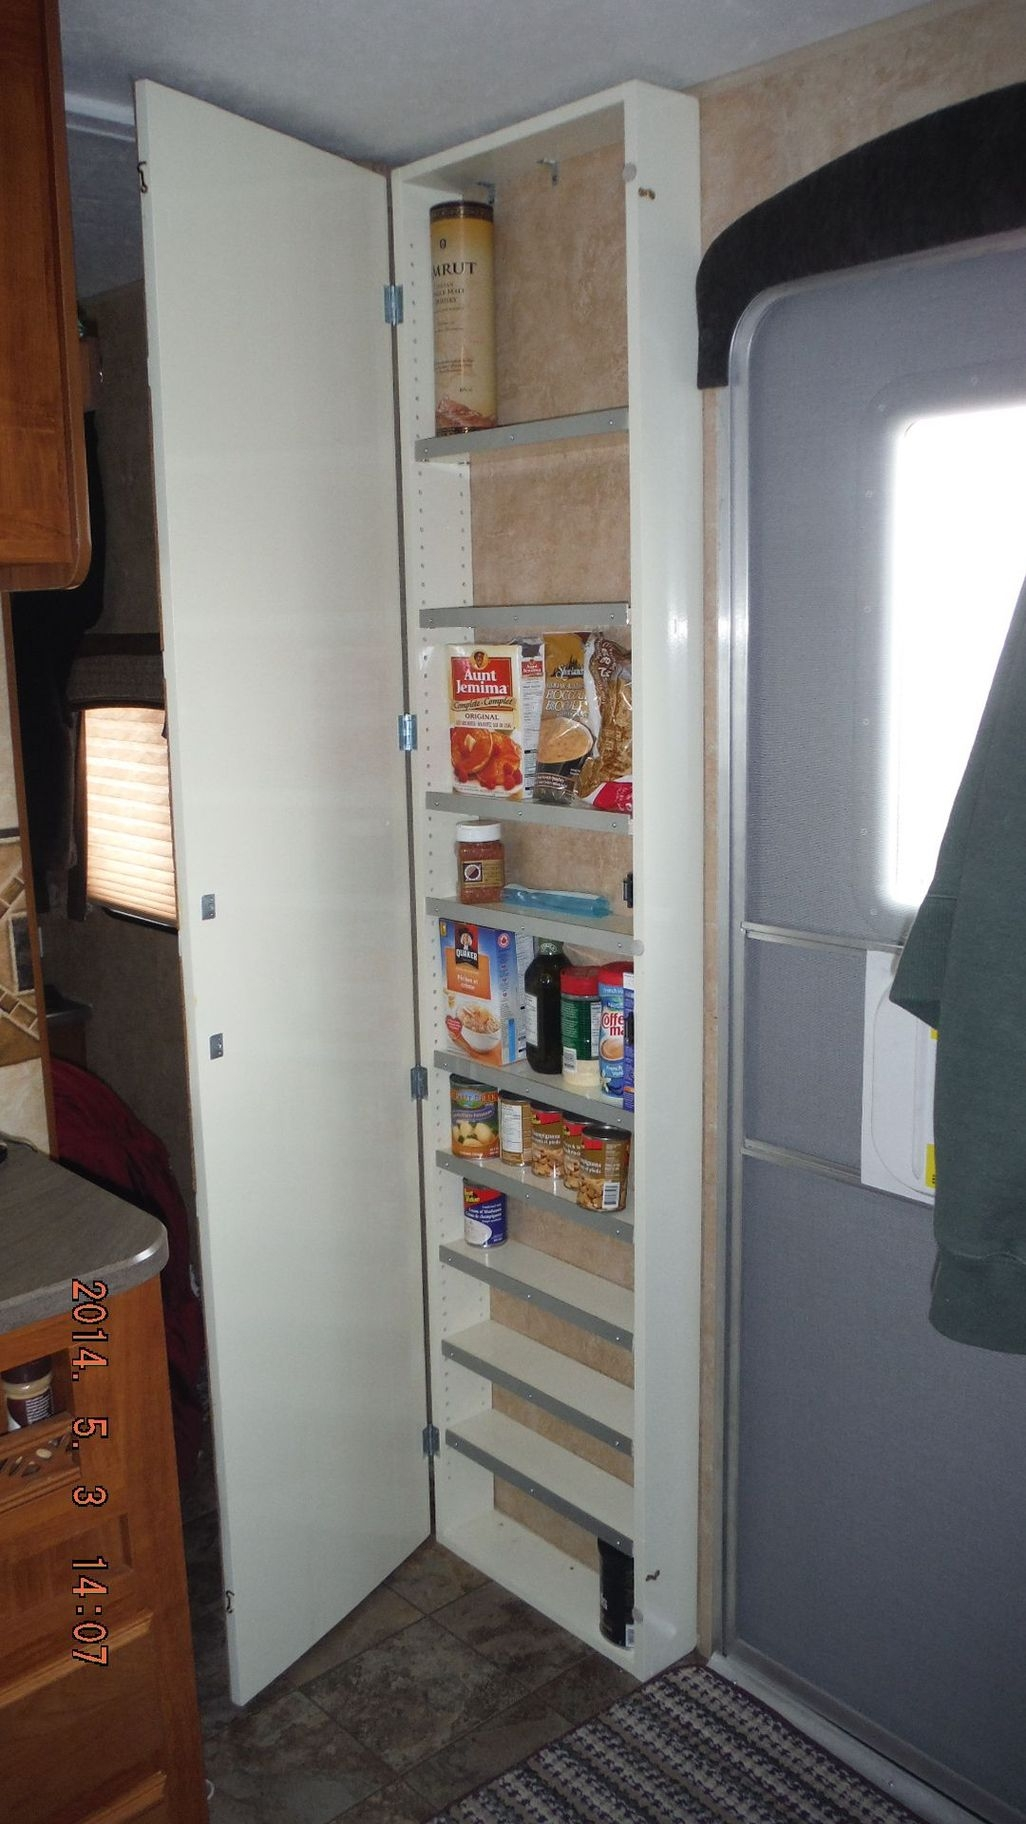 Best Rv Storage Hack Organization Inspiration Ideas 12